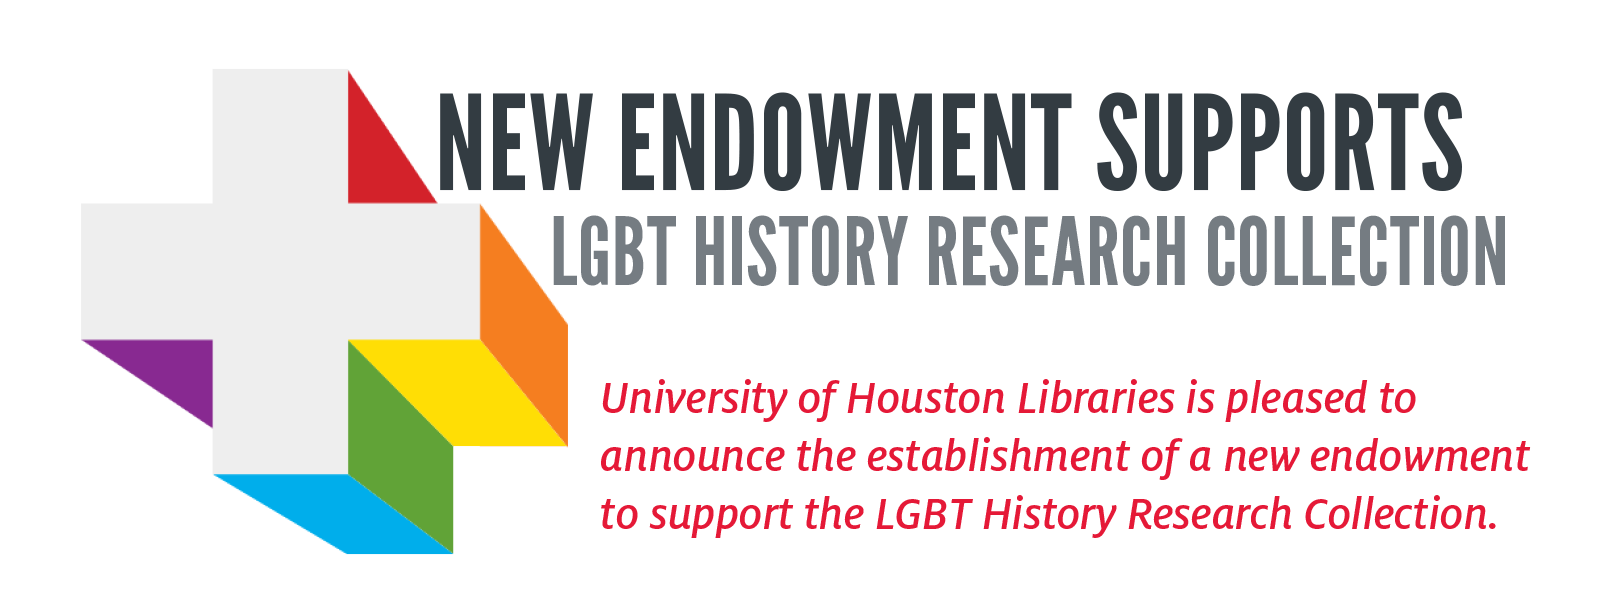 screengrab of the headline for the LGBT HISTORY RESEARCH COLLECTION endowment